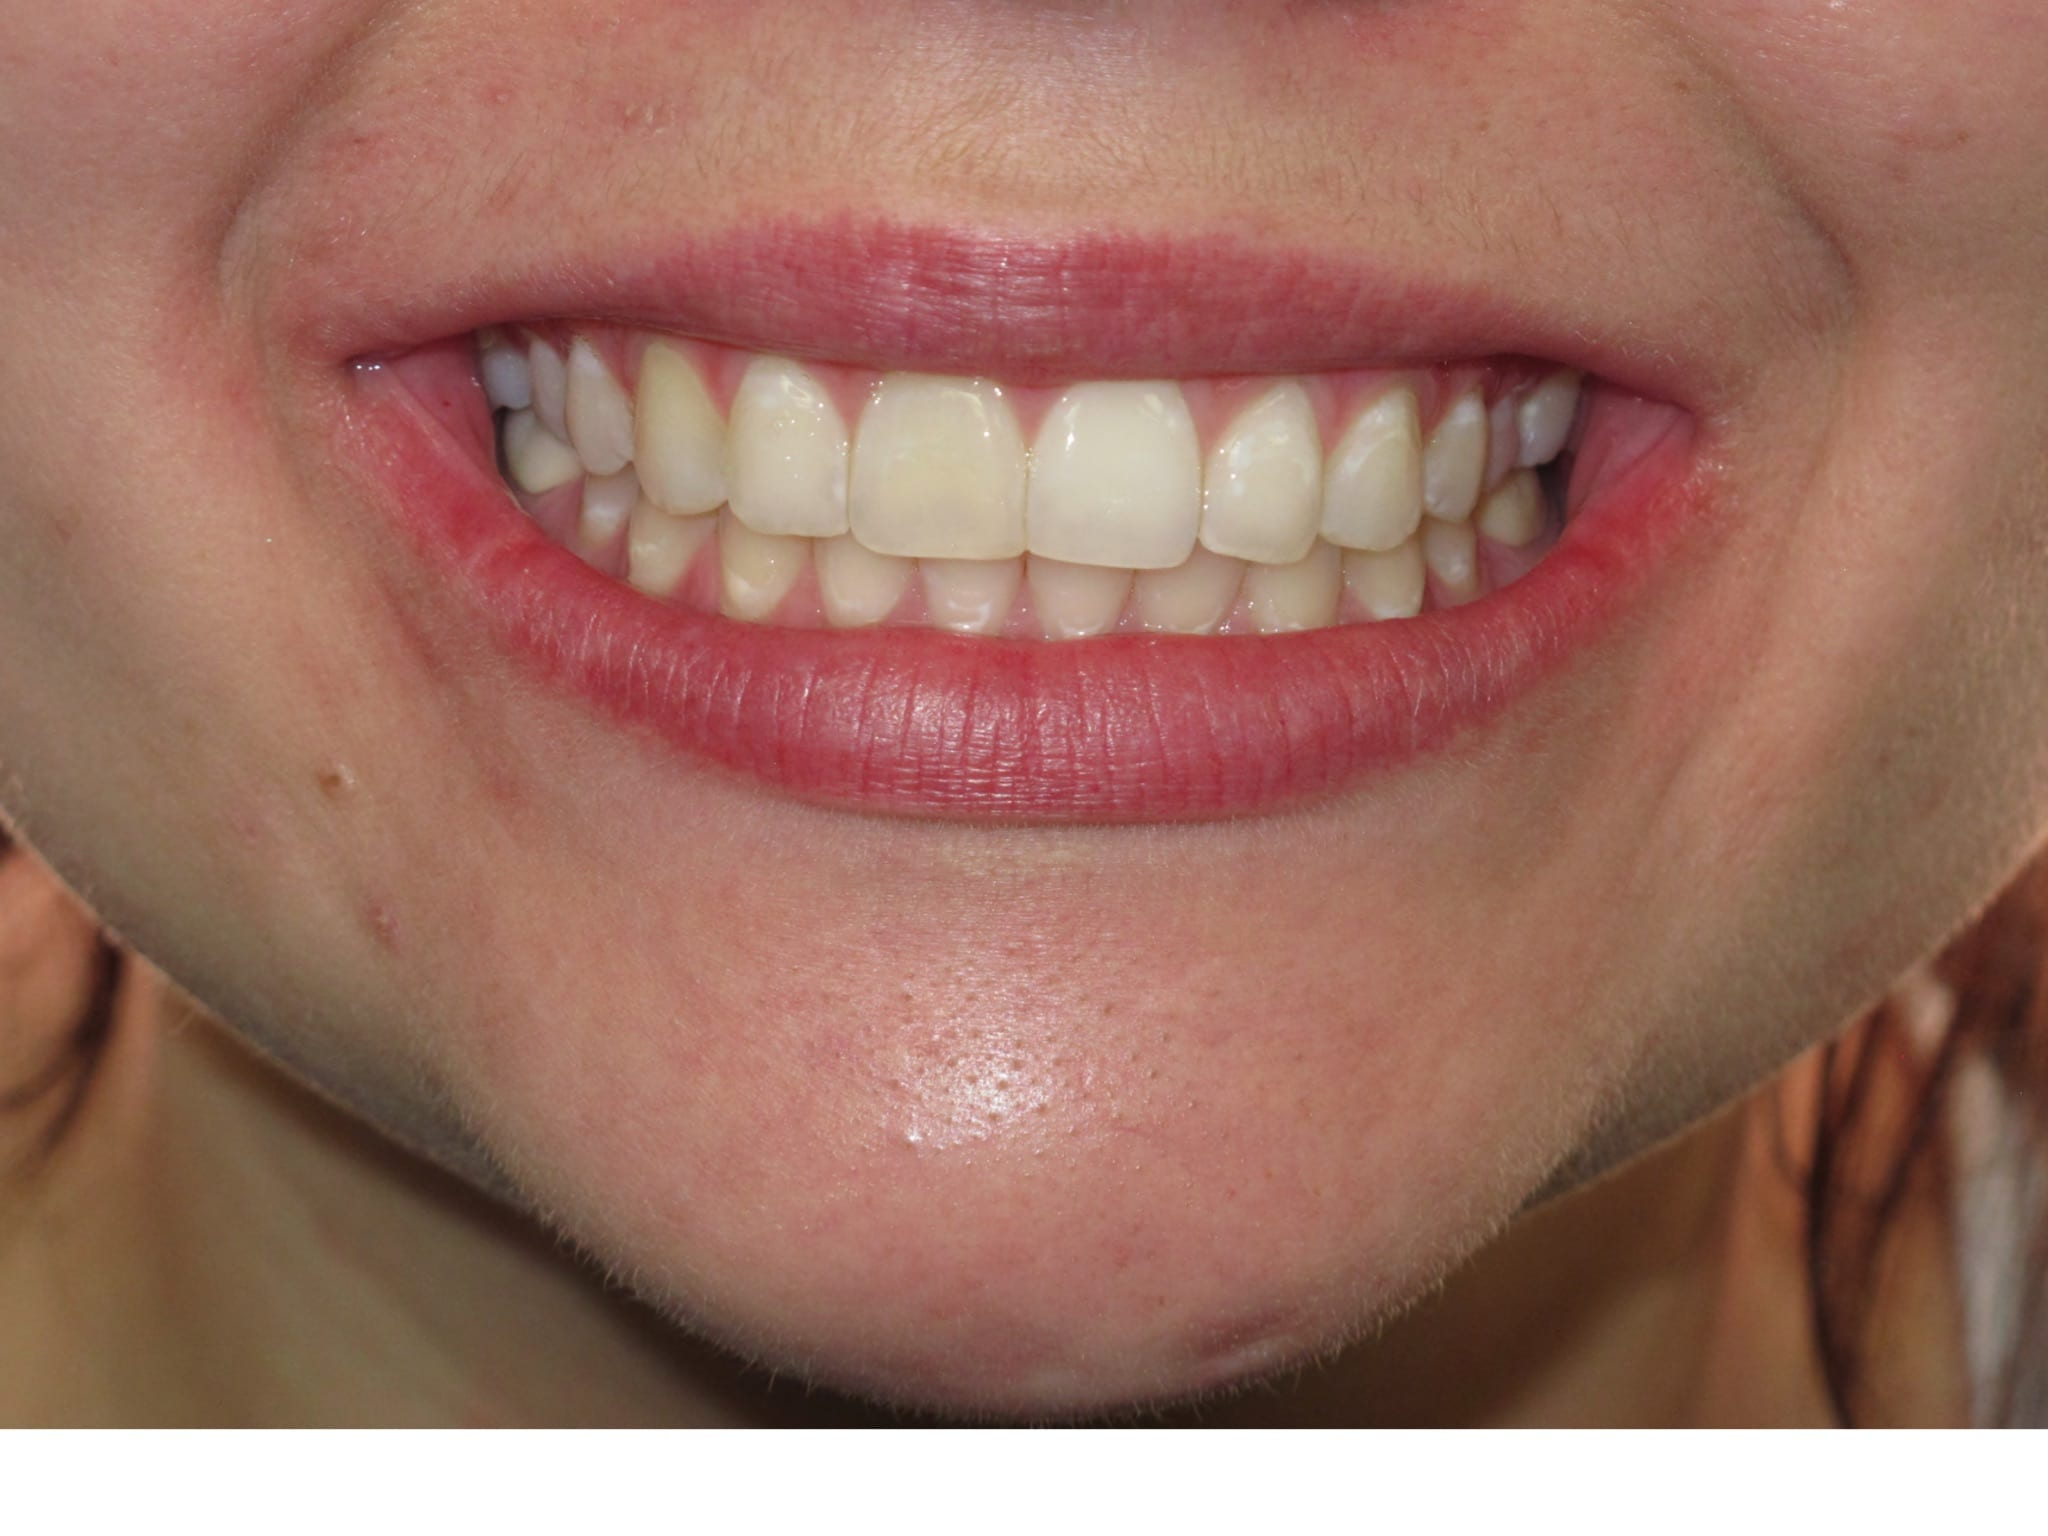 Left Intraoral Photo